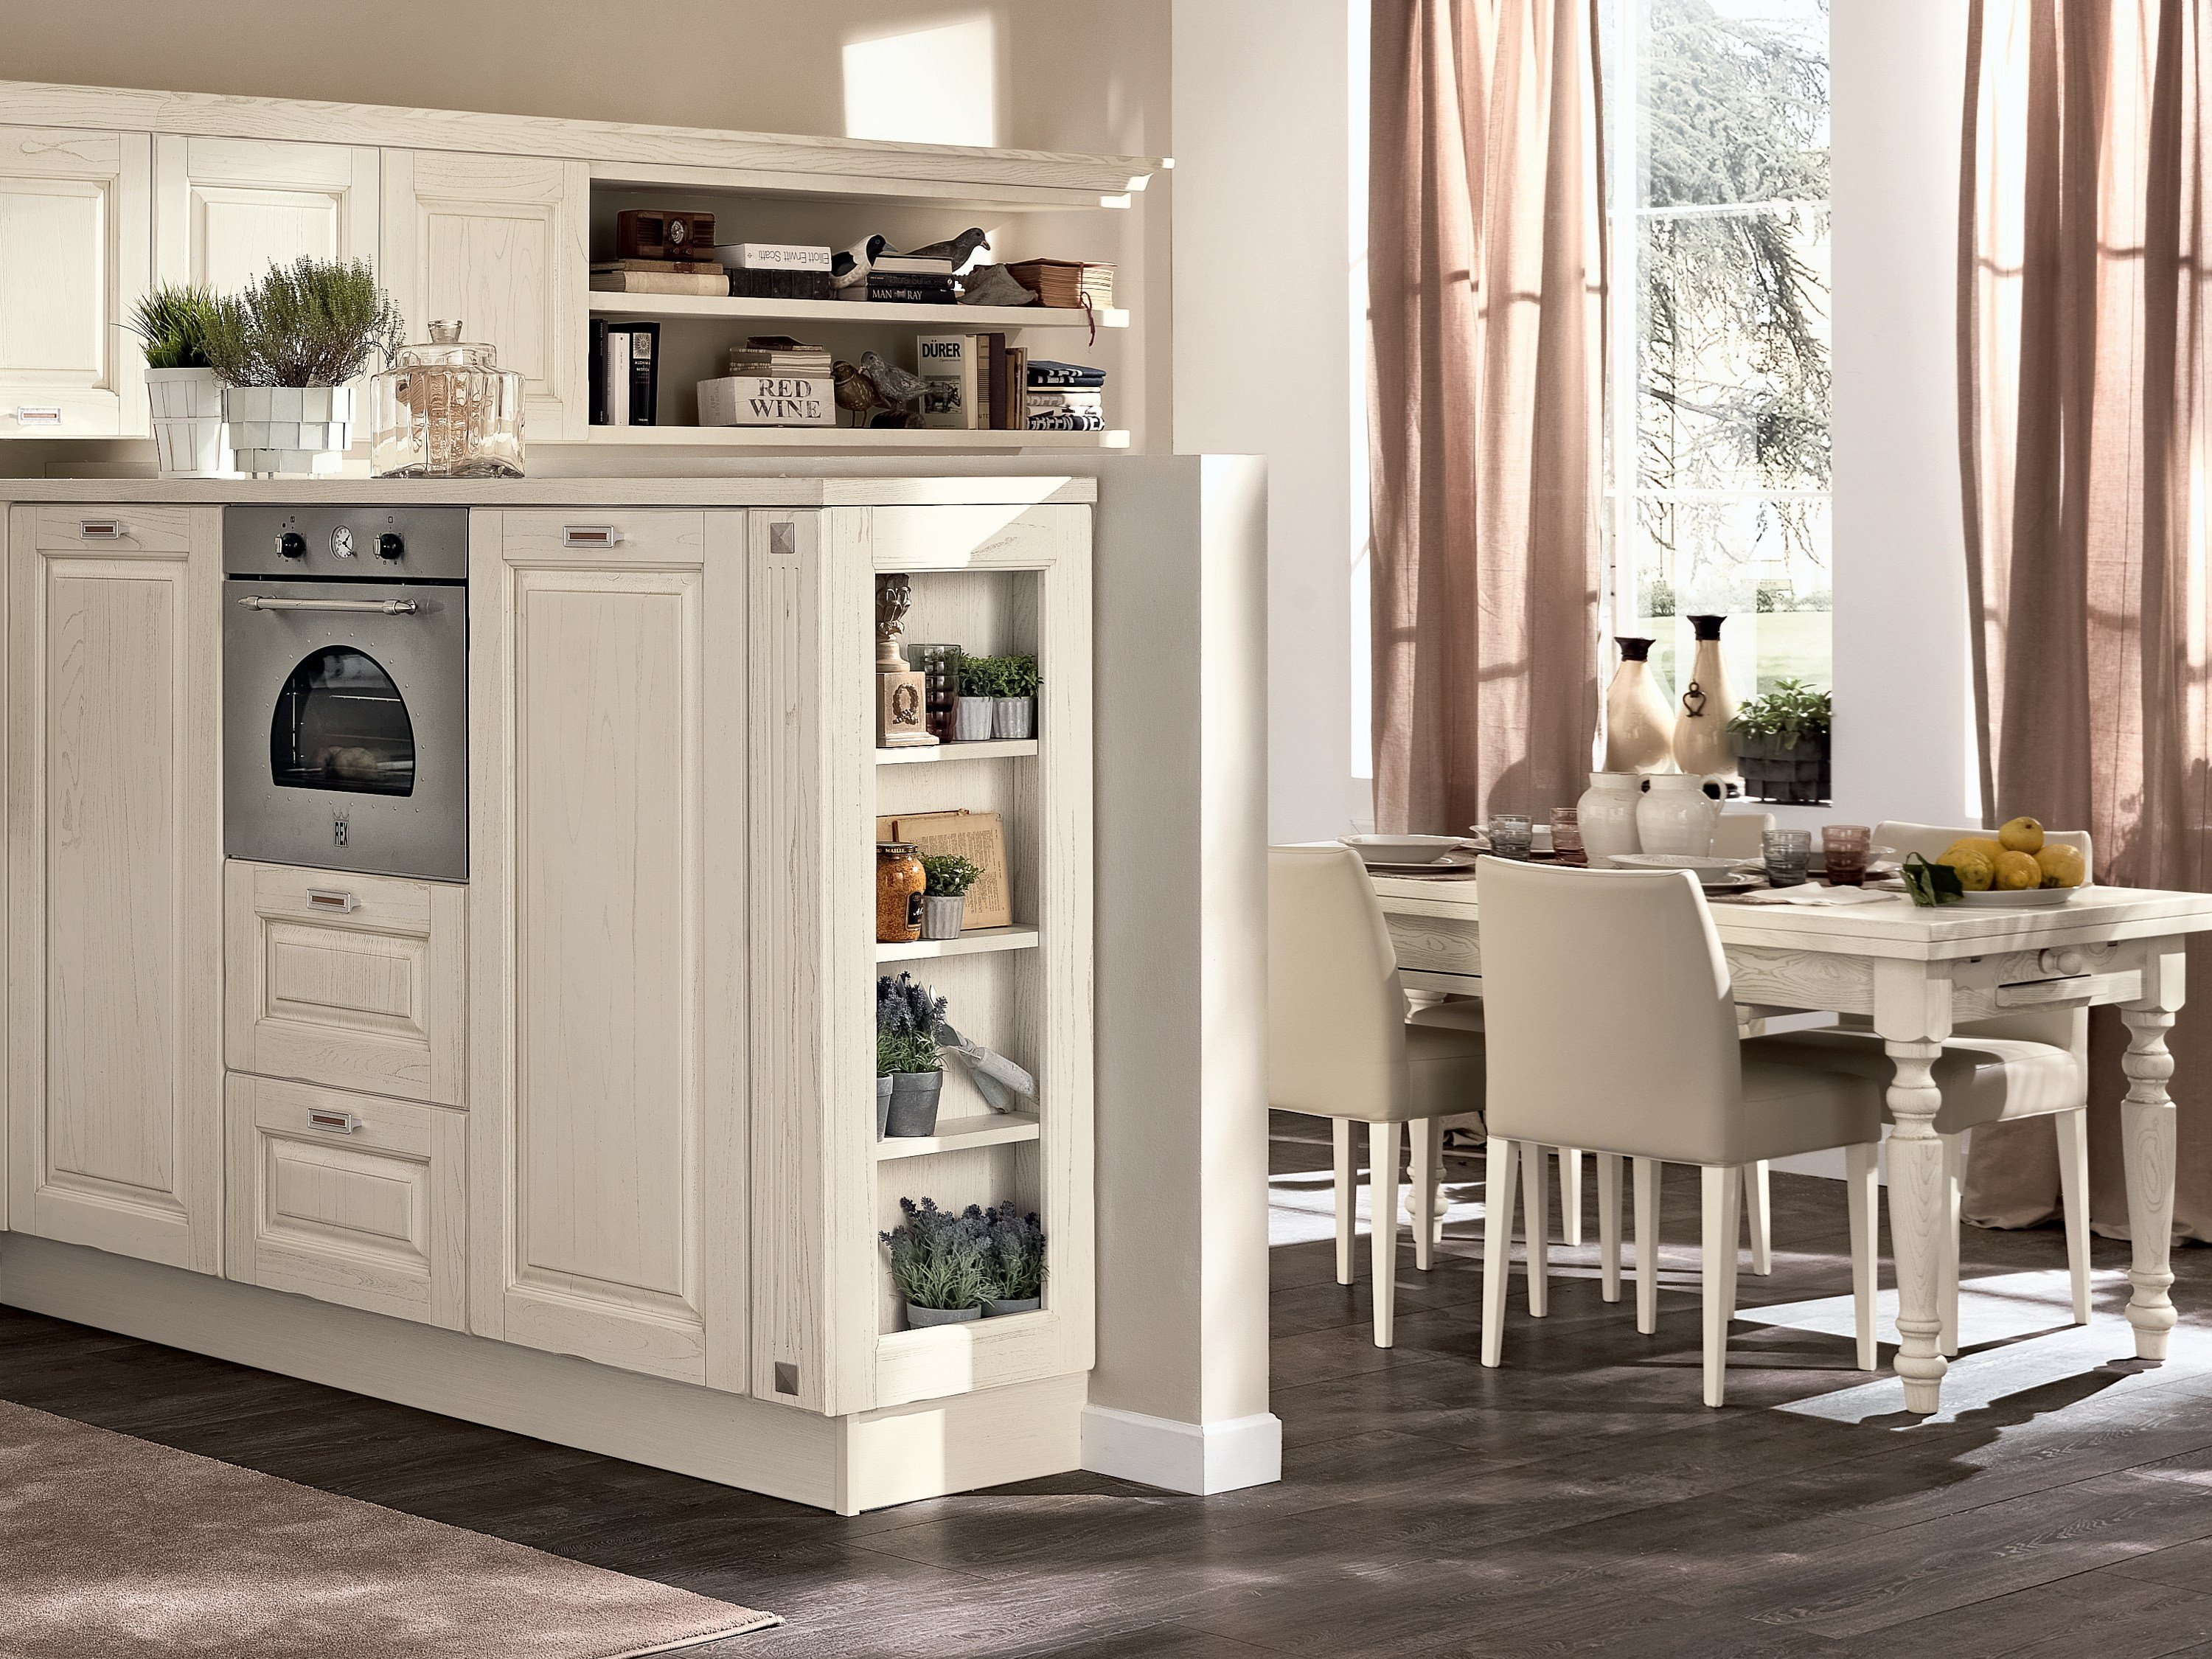 laura | kitchen with handles by cucine lube - Cucina Laura Lube